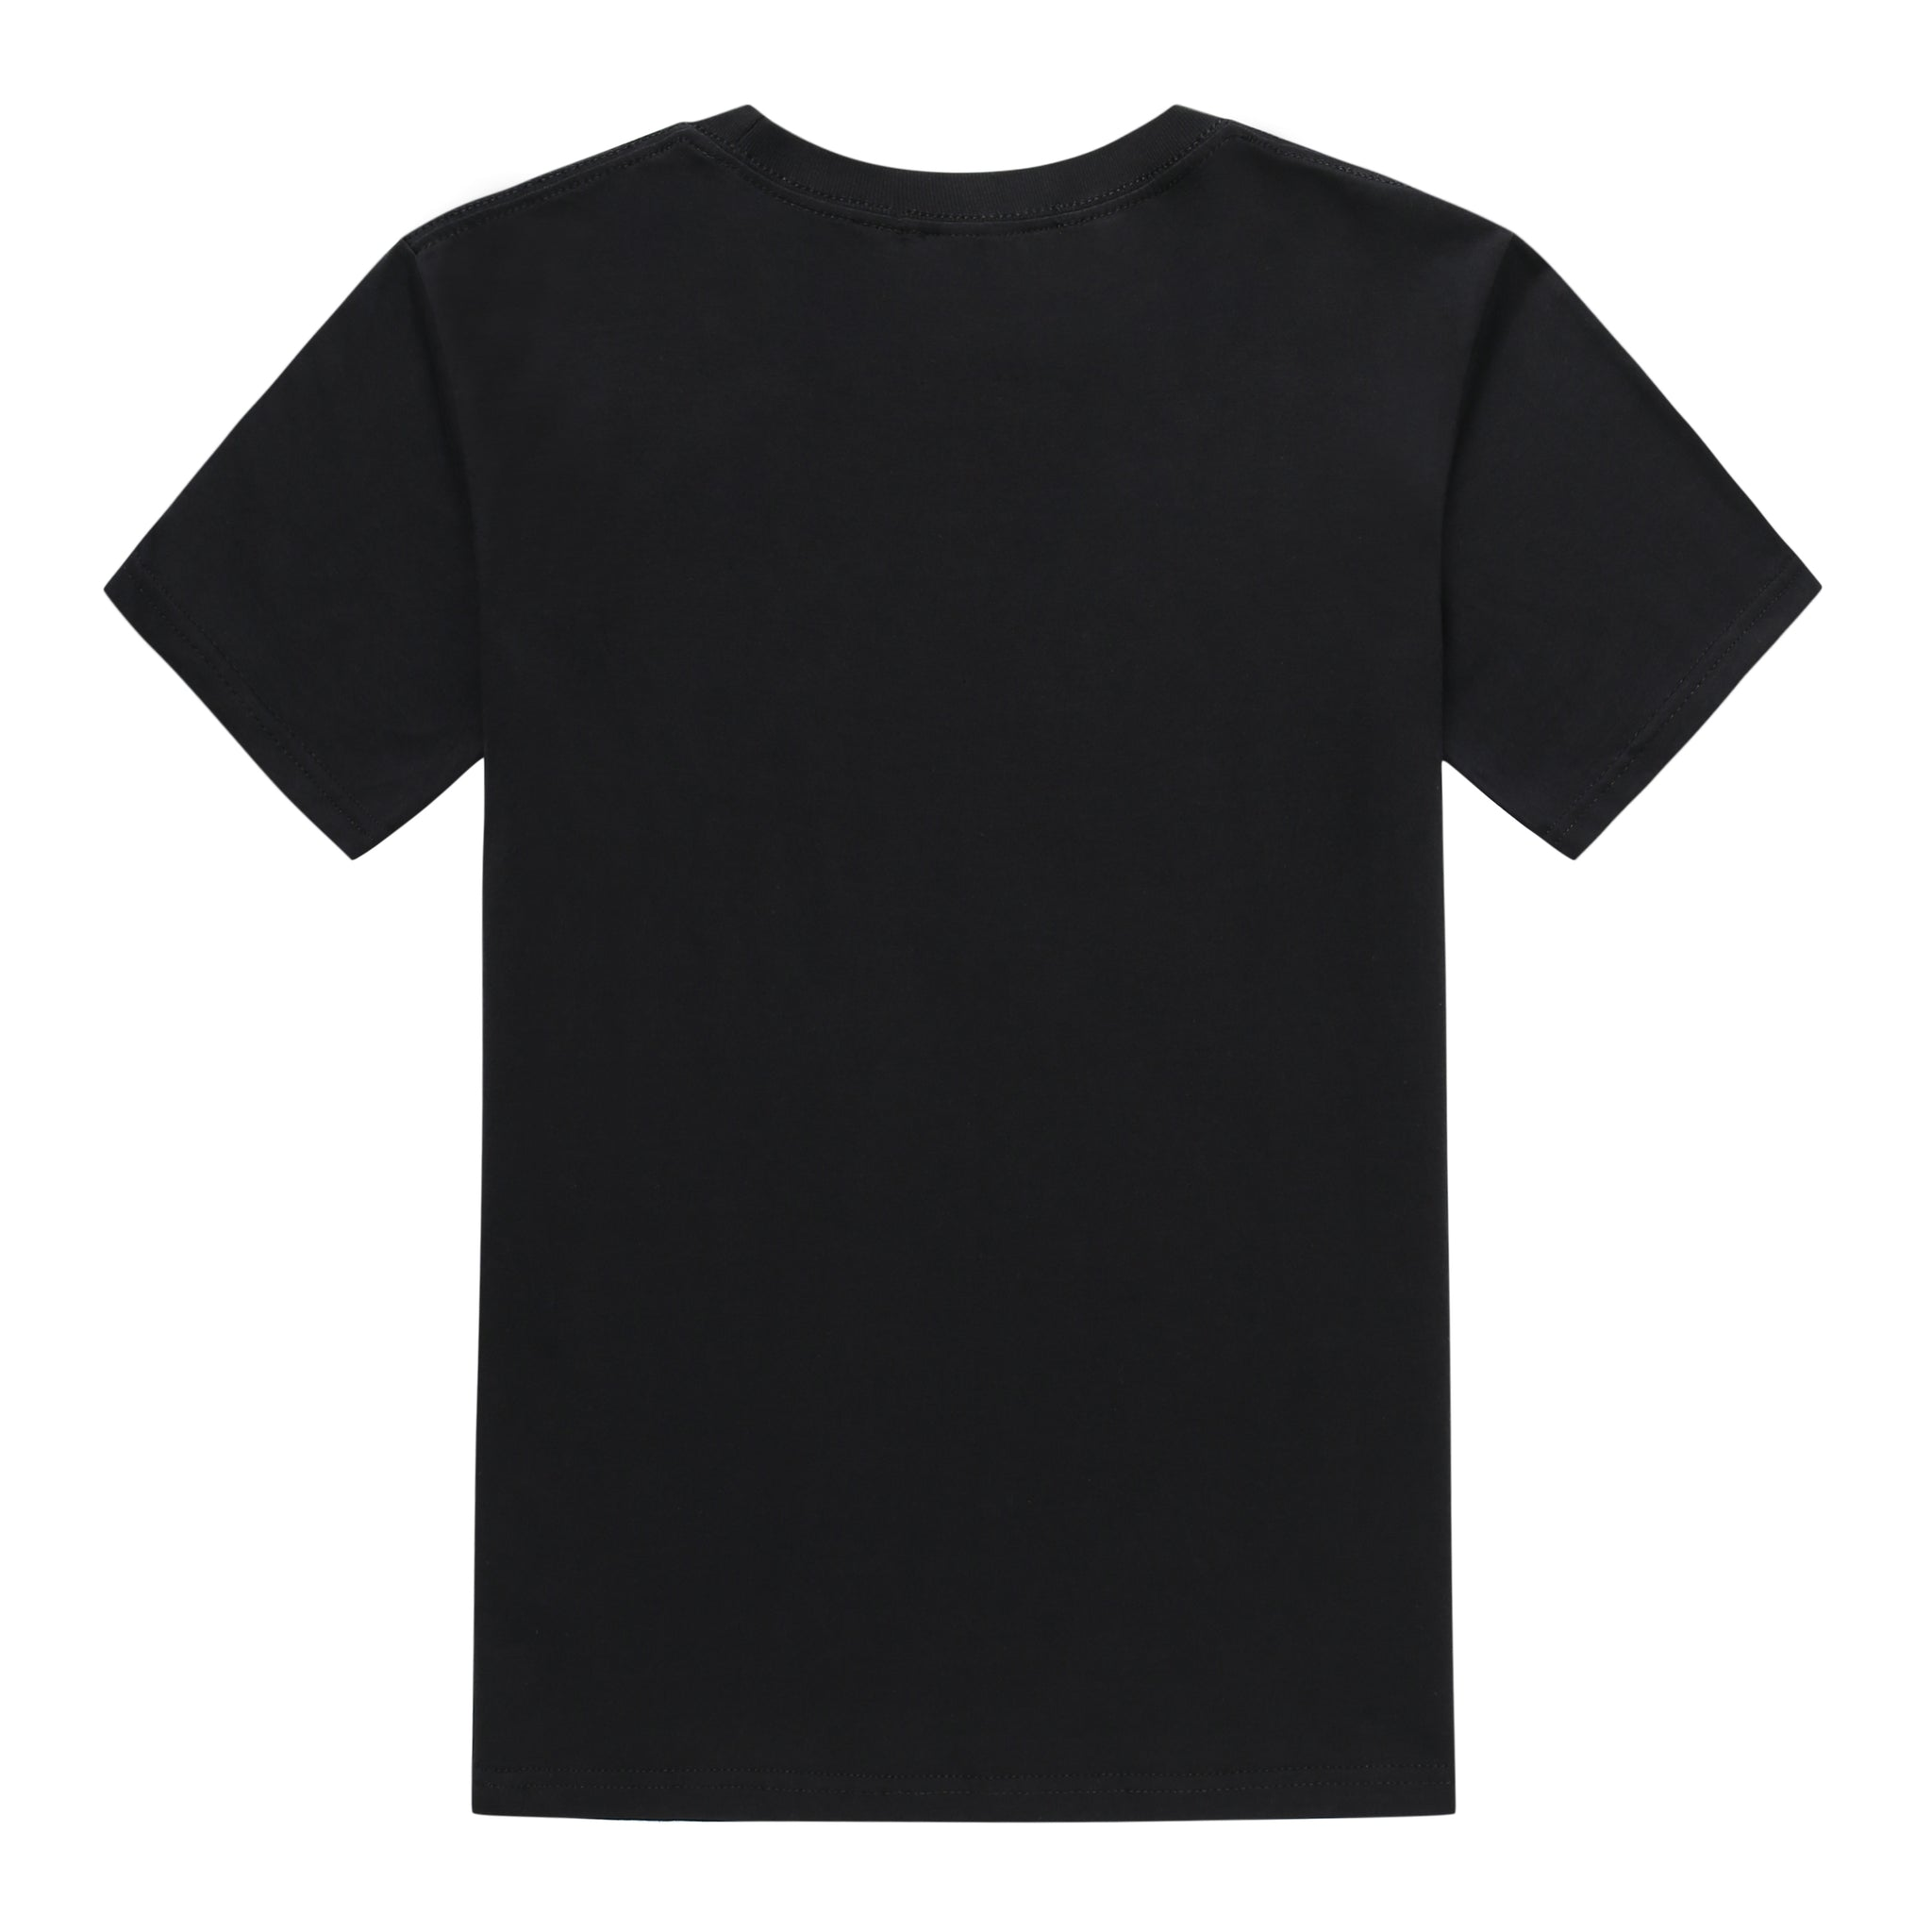 Original Hard To Say Graphic T-shirt In Black